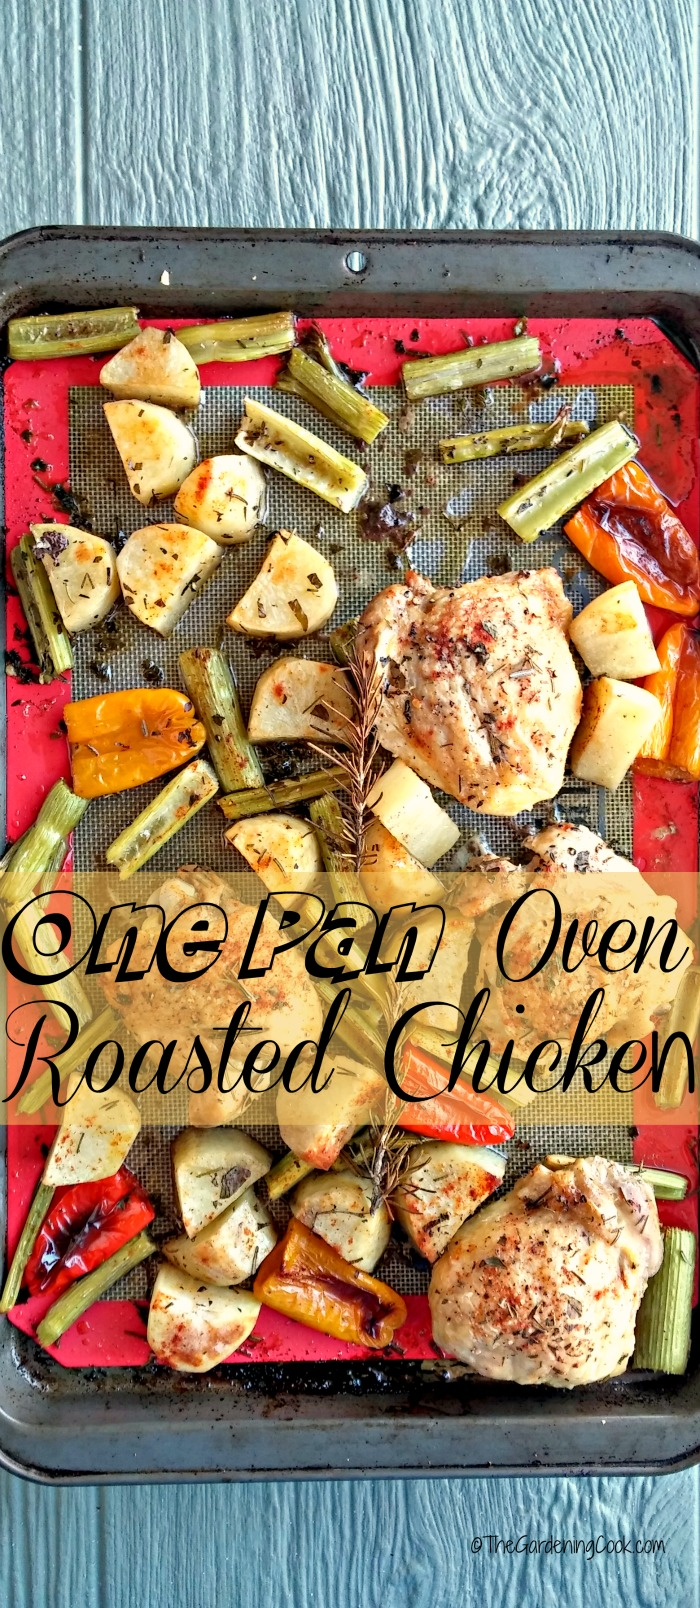 This One pan roast chicken is super easy to make and also to clean up after. The whole meal is really delicious! thegardeningcook.com